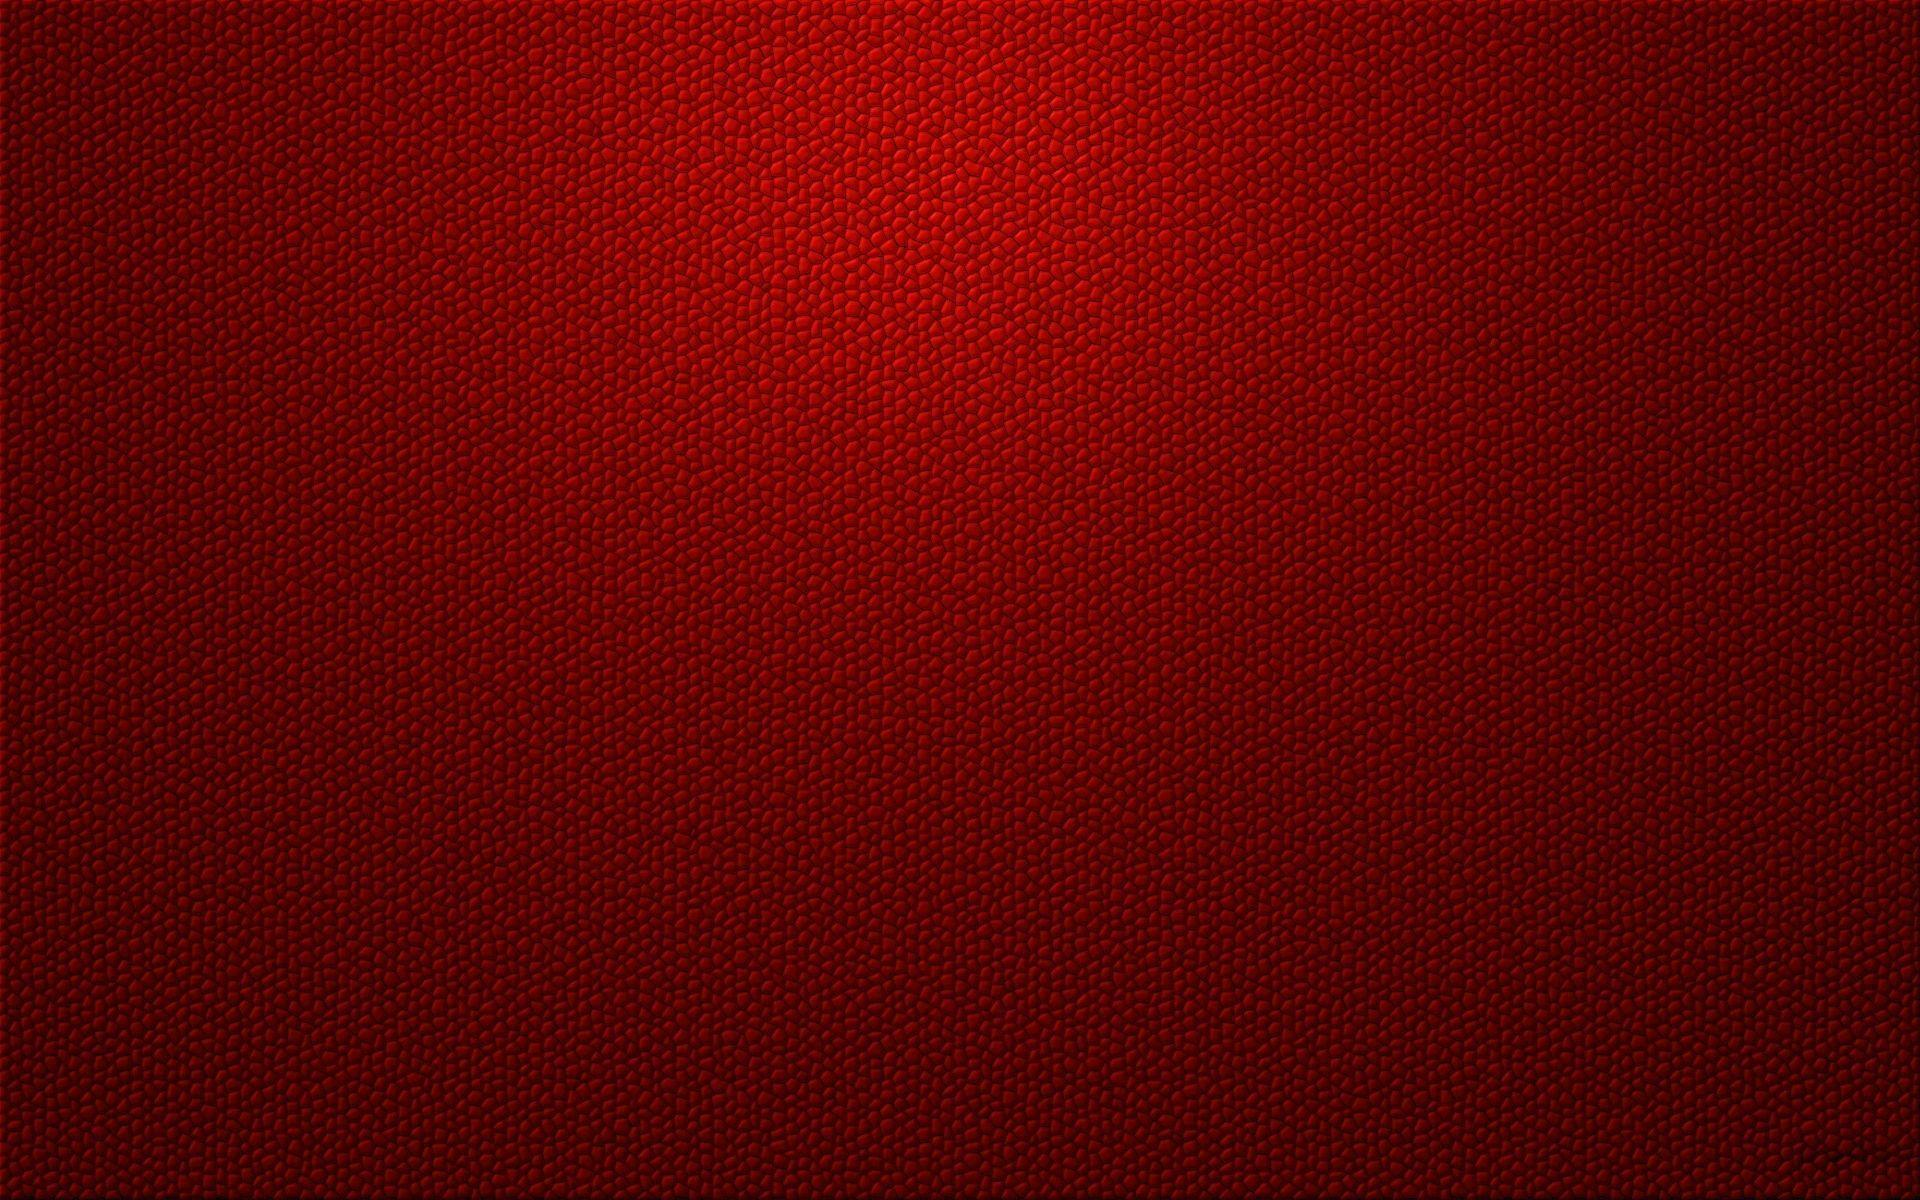 red textured background hd - photo #2